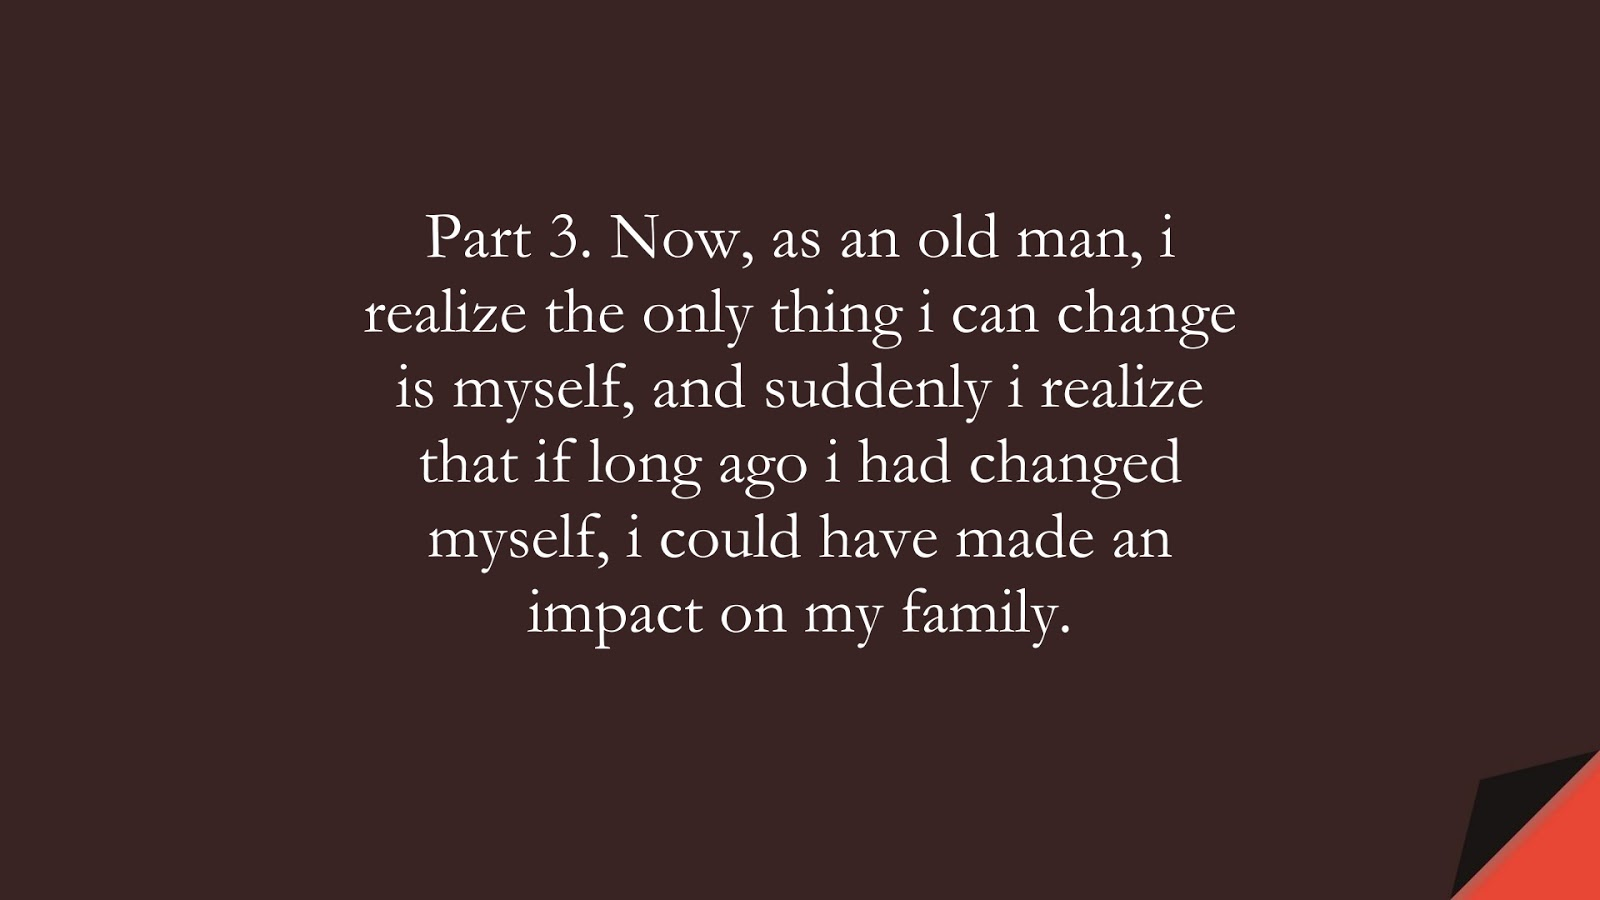 Part 3. Now, as an old man, i realize the only thing i can change is myself, and suddenly i realize that if long ago i had changed myself, i could have made an impact on my family.FALSE